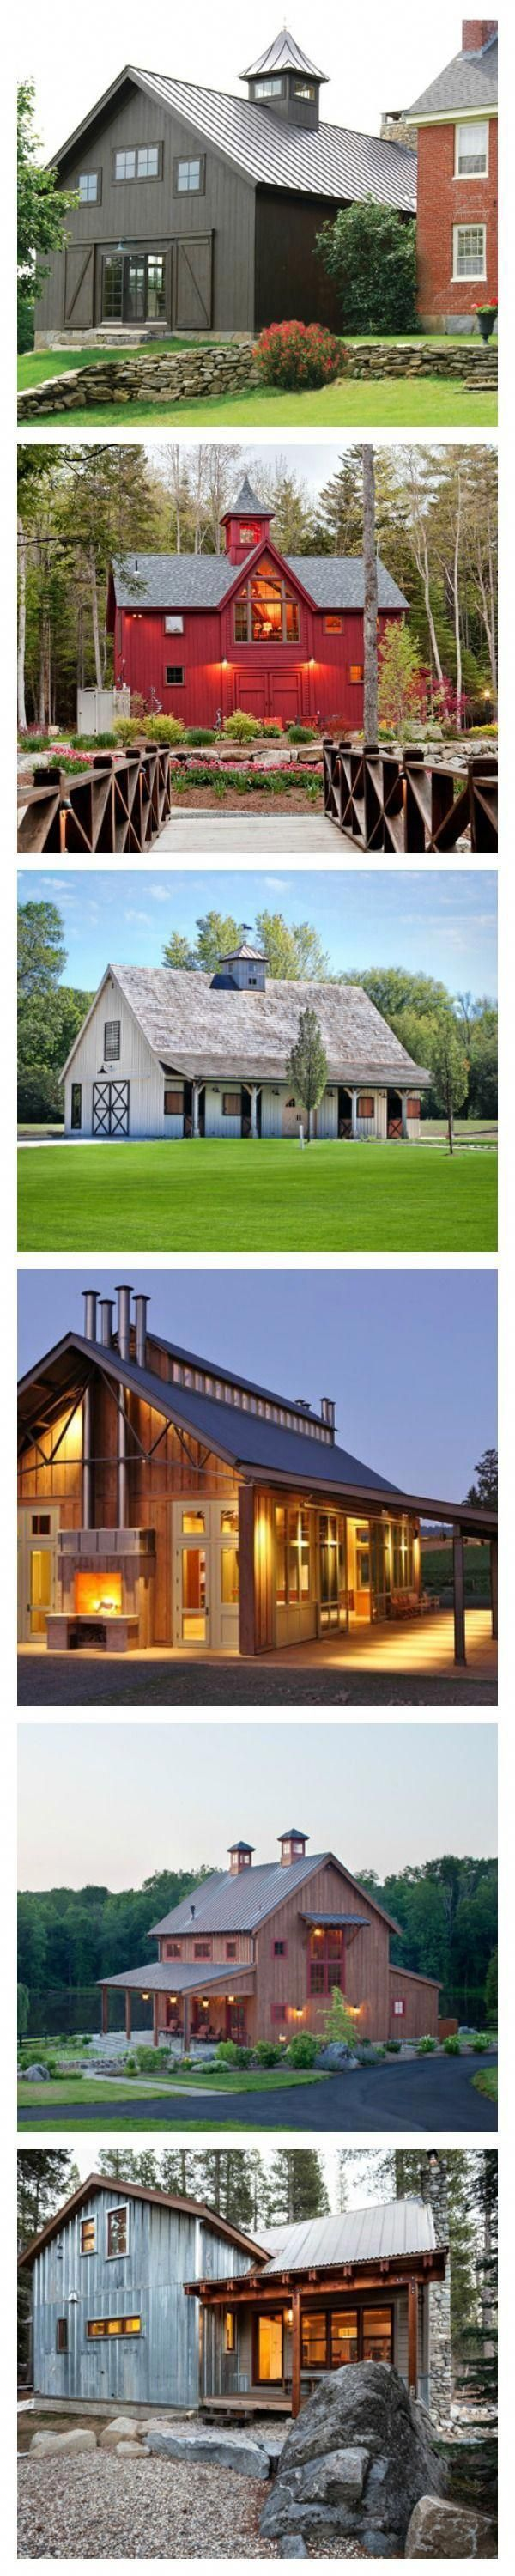 Pole Barn Home Design Idea, Pictures, Popular Pin Ideas. #homeremodelingbeforean... #polebarngarage